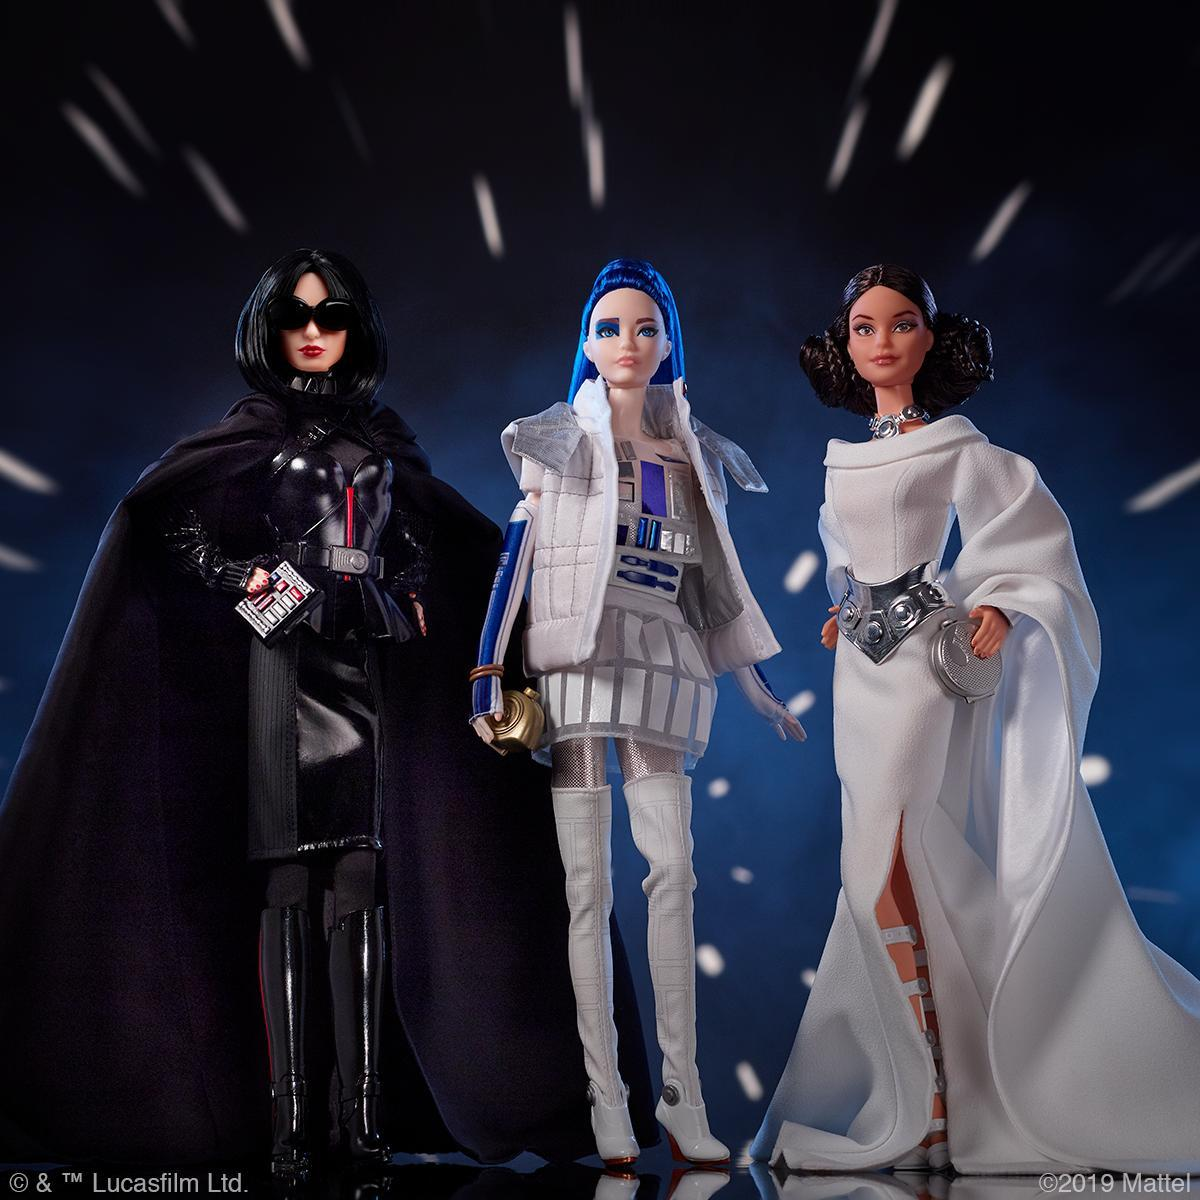 Barbie Star Wars Mattel figures